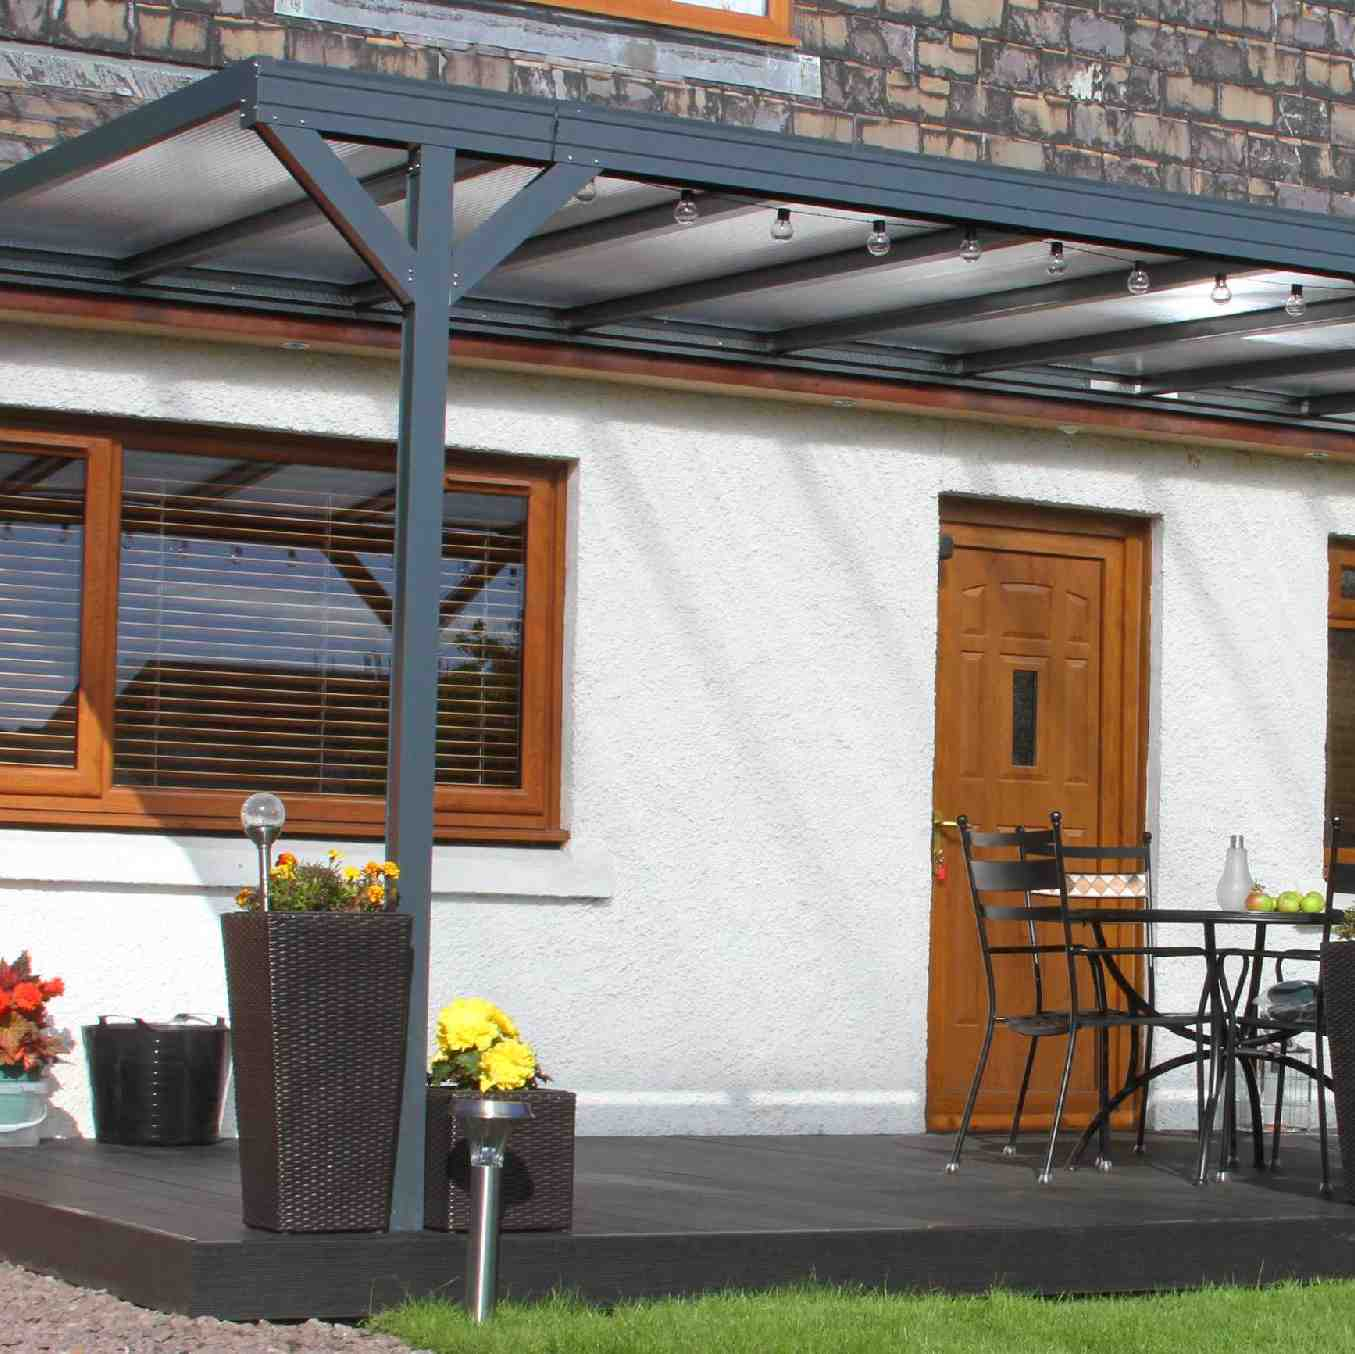 Omega Verandah, Anthracite Grey, 16mm Polycarbonate Glazing - 9.9m (W) x 4.0m (P), (5) Supporting Posts